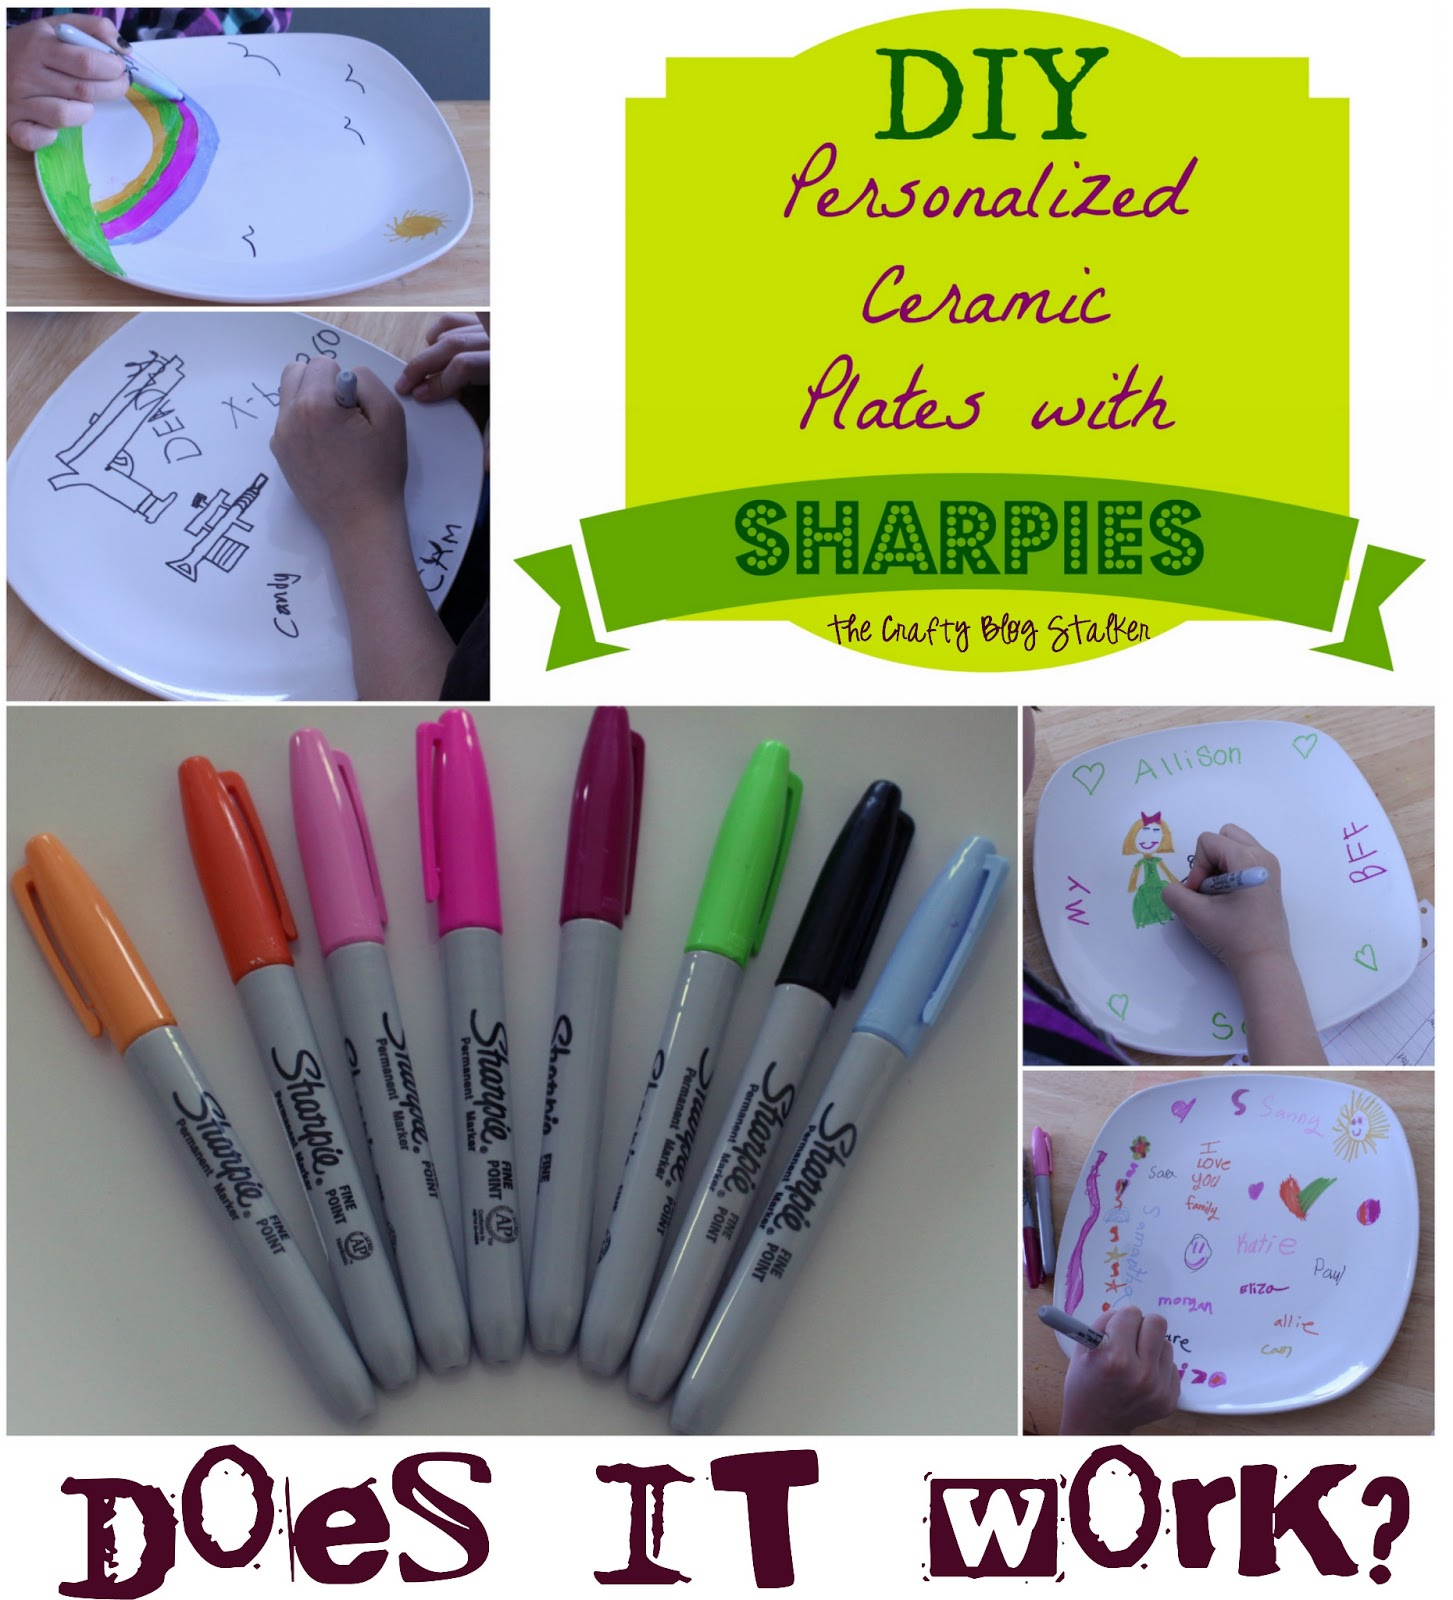 sc 1 st  The Crafty Blog Stalker & How to Personalize Ceramic Plates w/ Sharpies - The Crafty Blog Stalker